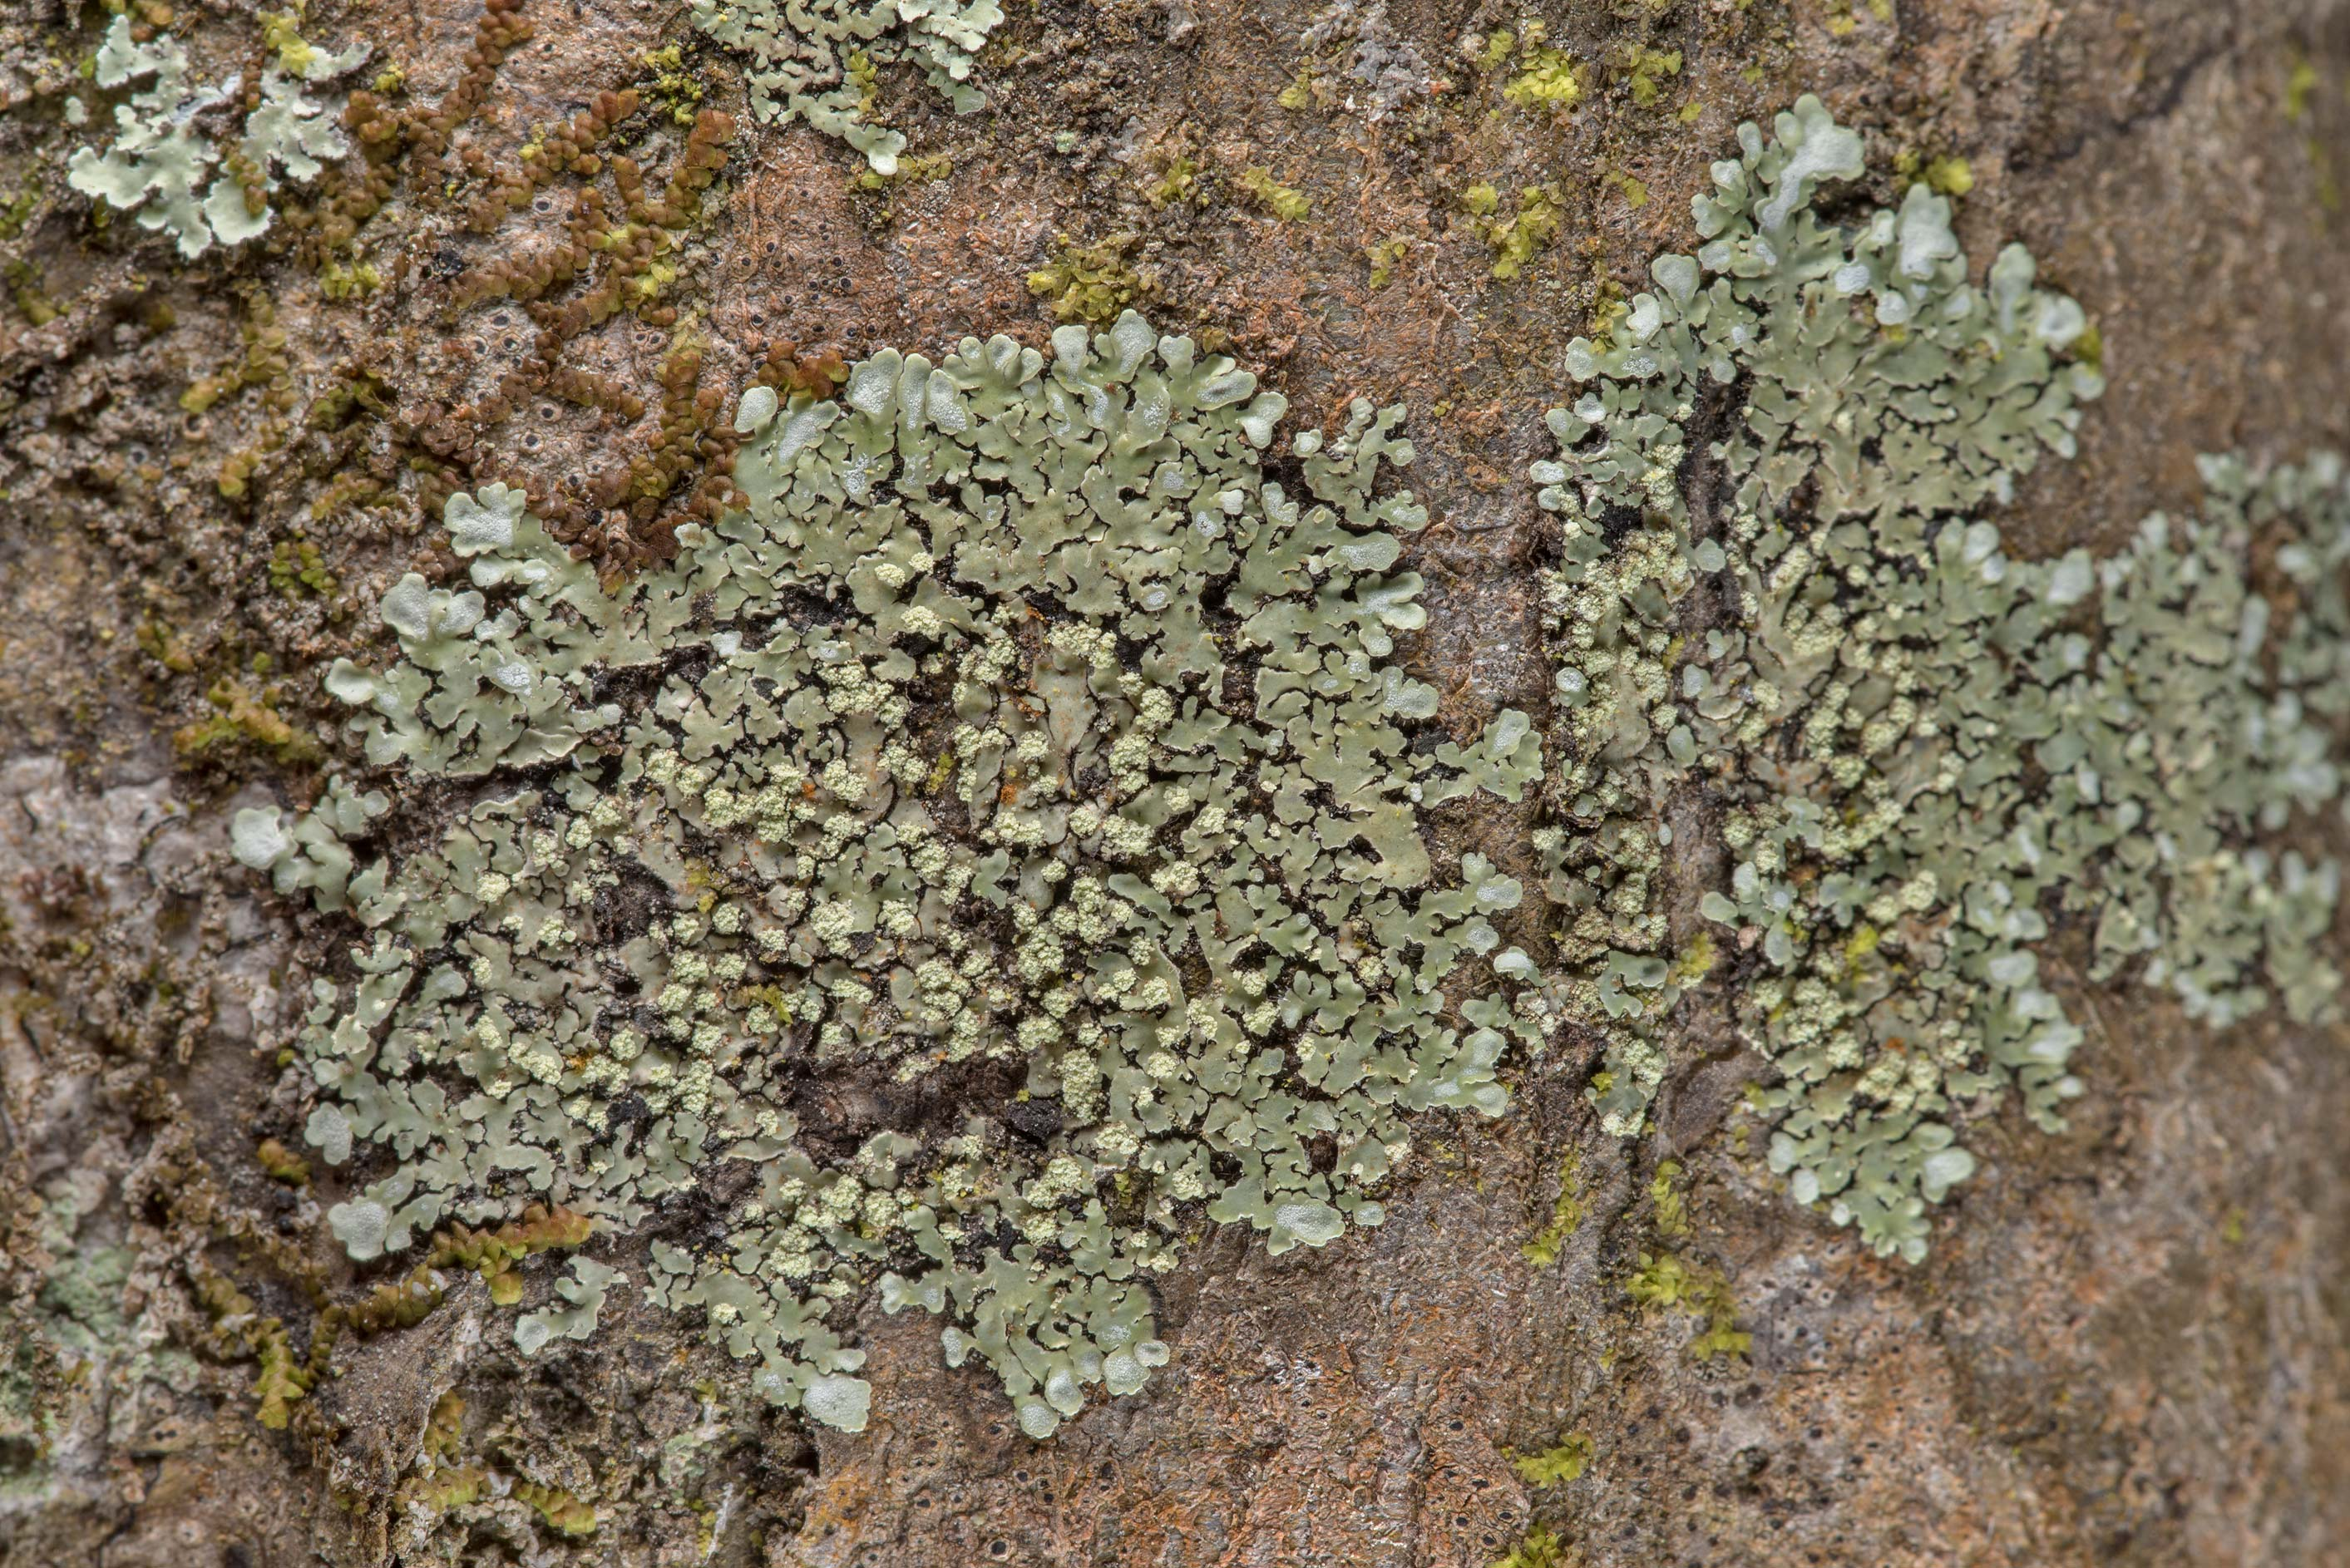 Buttoned rosette lichen Pyxine sorediata on...National Forest near Huntsville. Texas